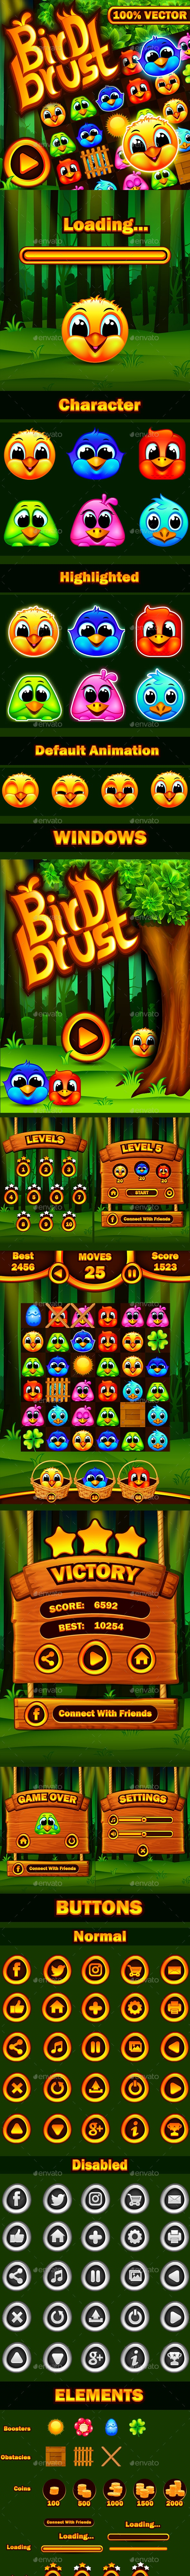 Bird Brust Match-3 Puzzle Game UI - User Interfaces Game Assets